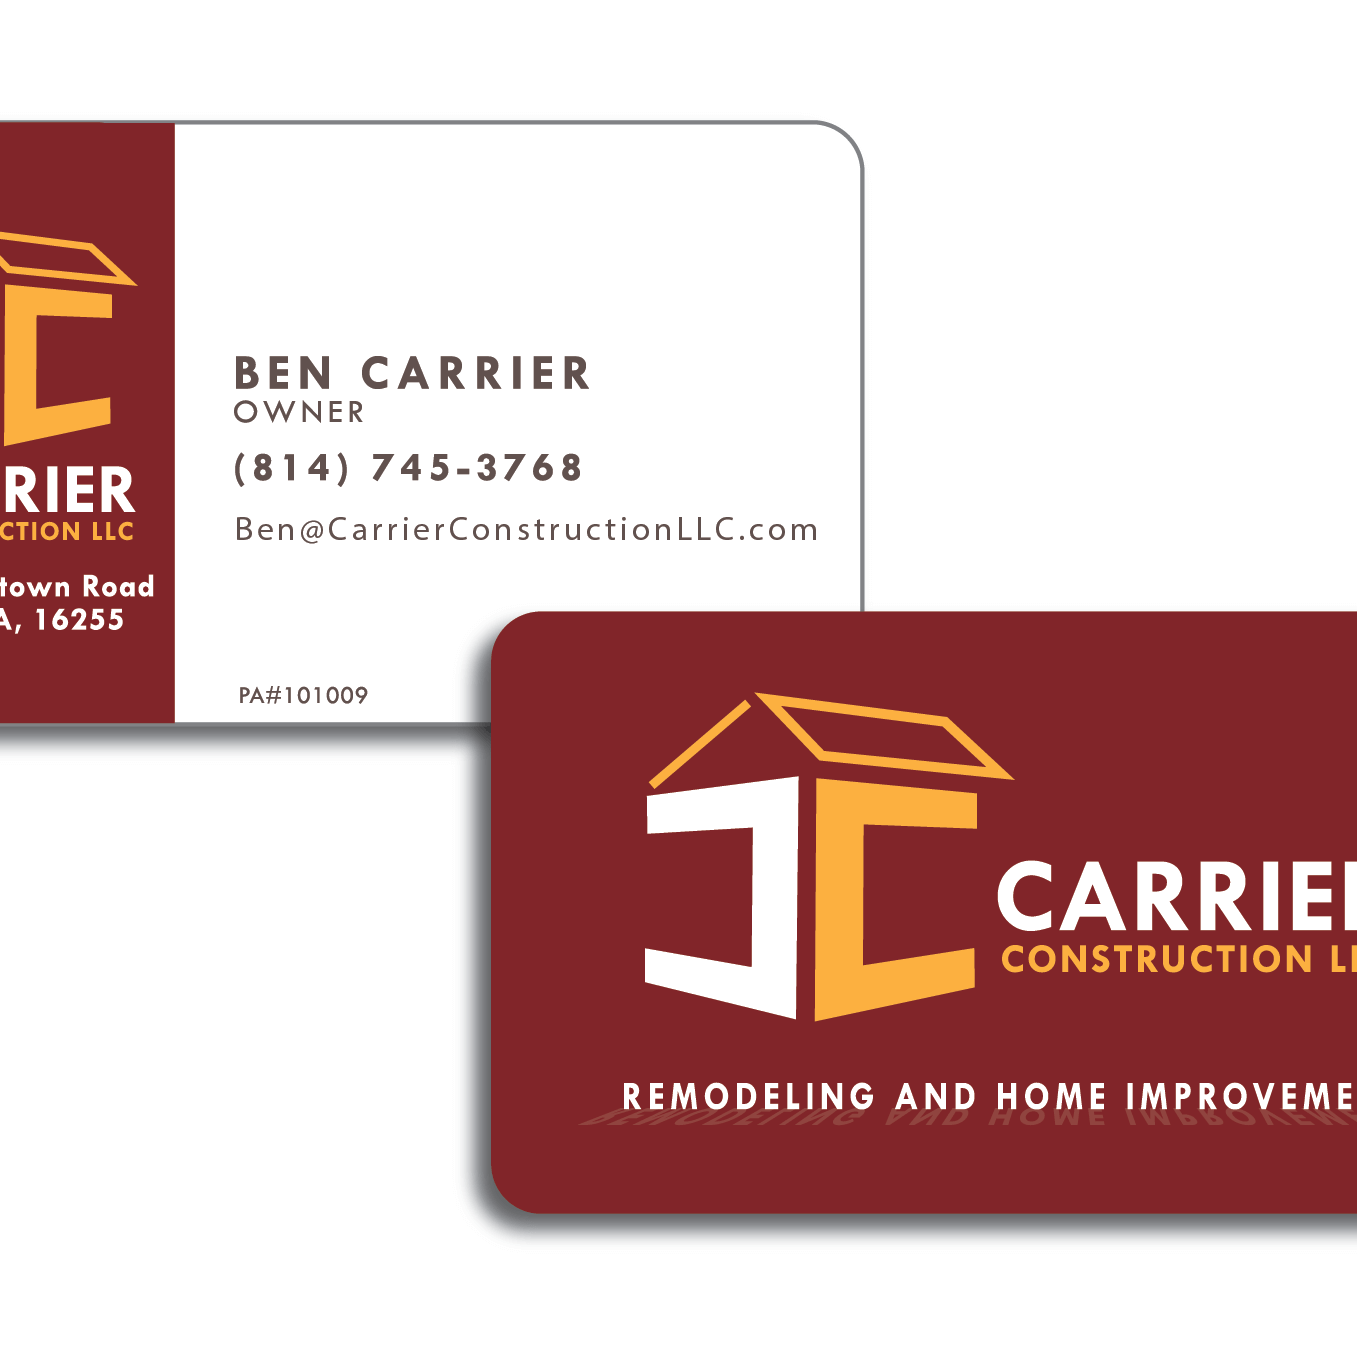 Business Card Design for Carrier Construction in Sligo PA